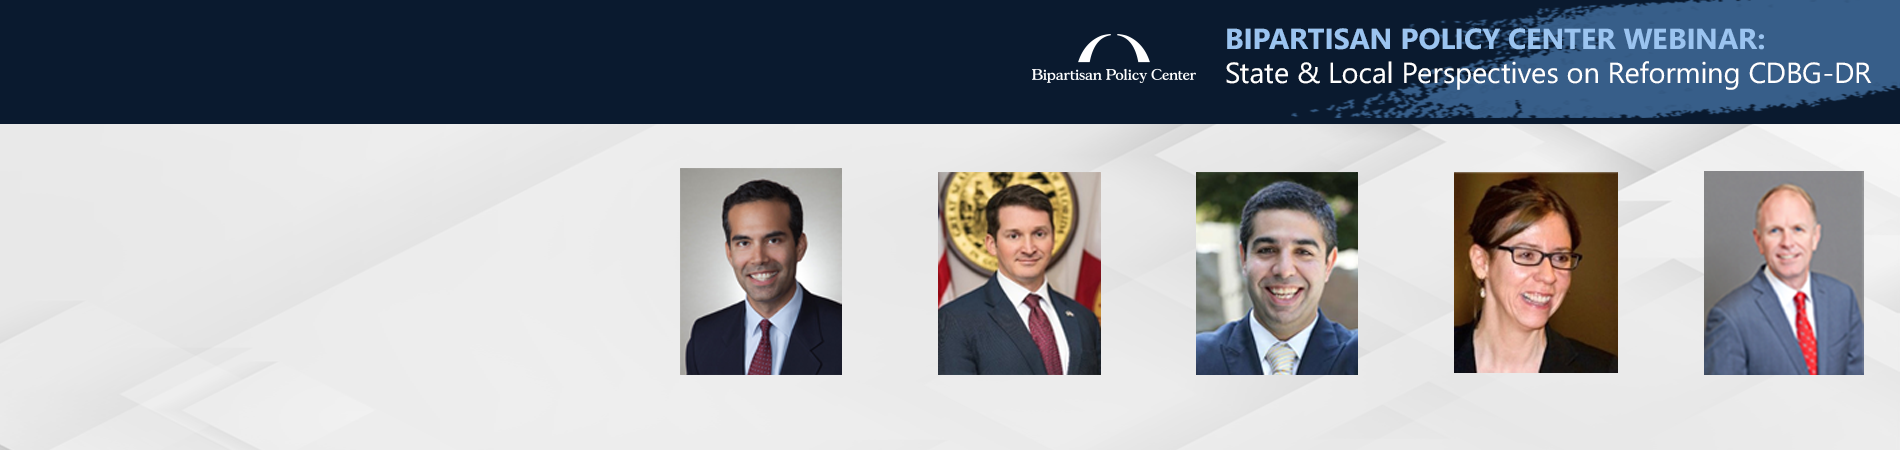 BPC Webinar: State & Local Perspectives on Reforming CDBG-DR